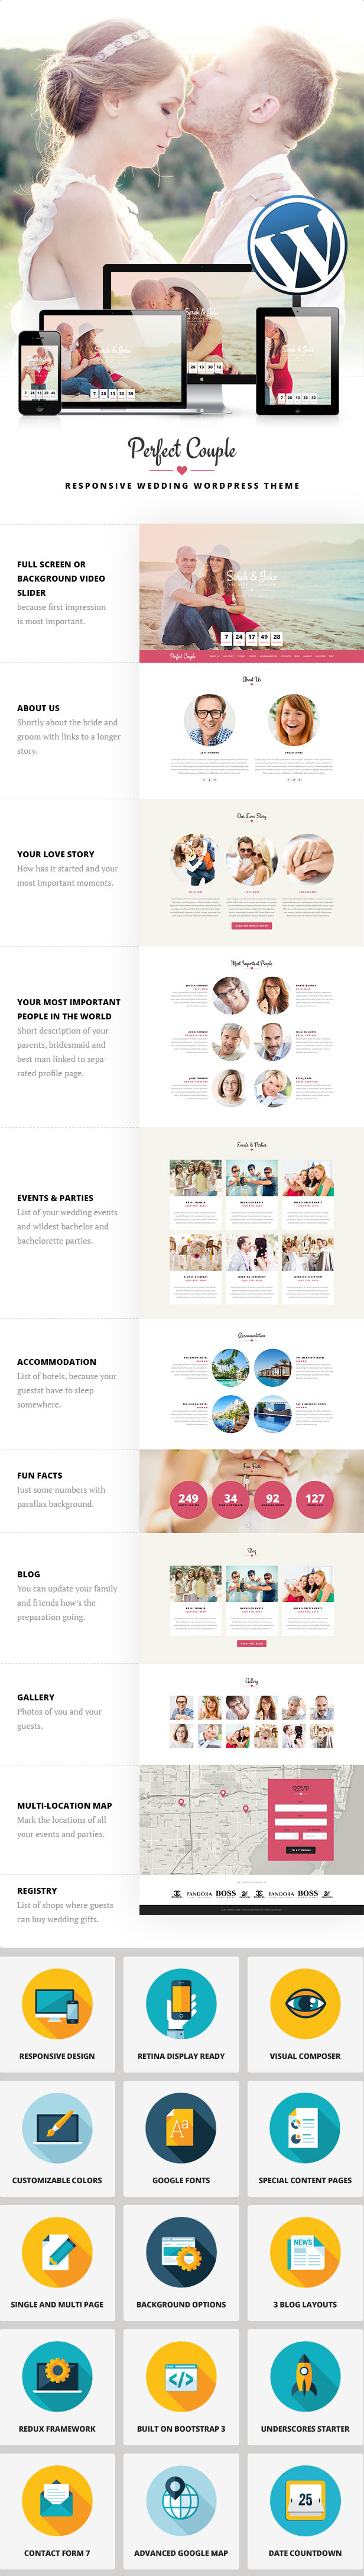 Perfect Couple - Wedding WordPress Theme | Perfect couple, Wordpress ...